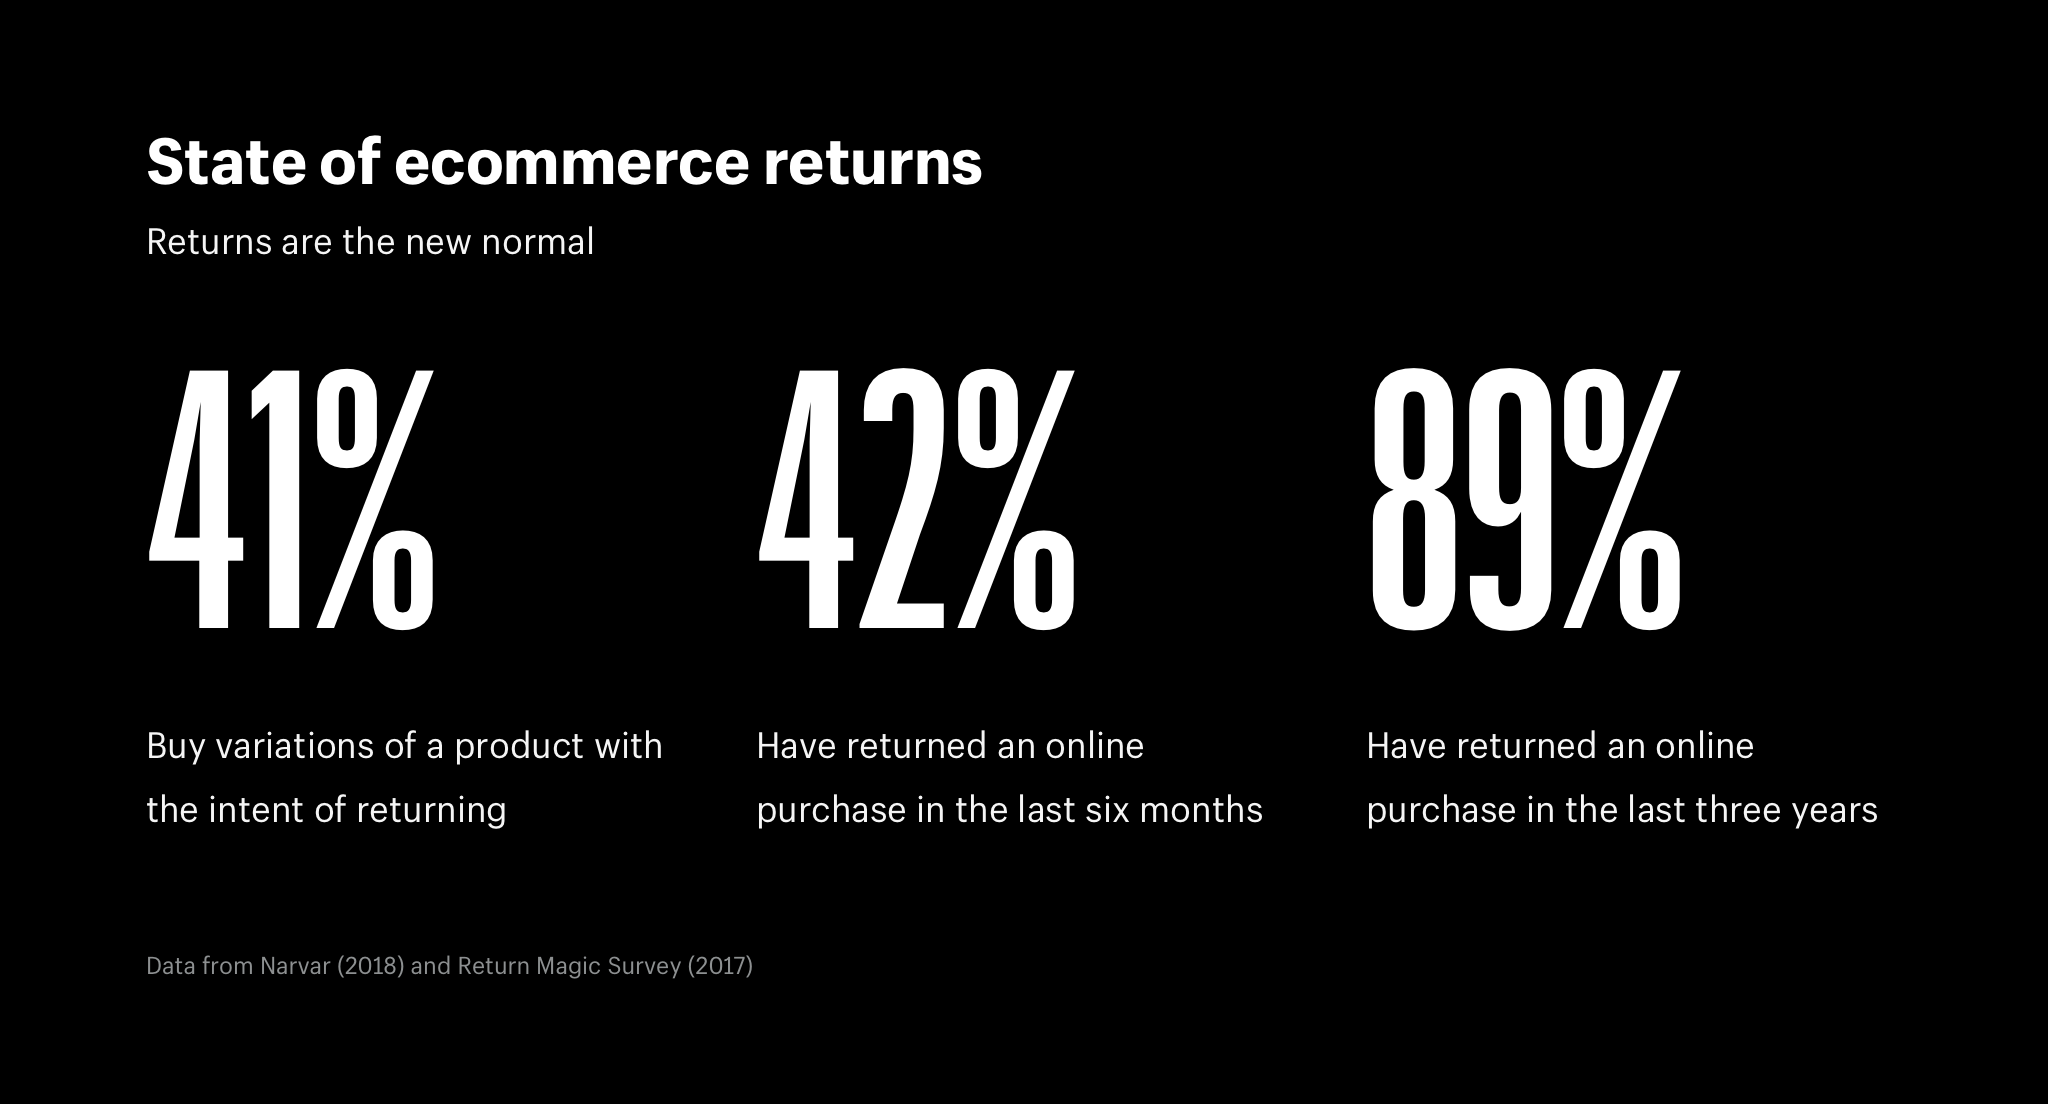 State_of_ecommerce_returns